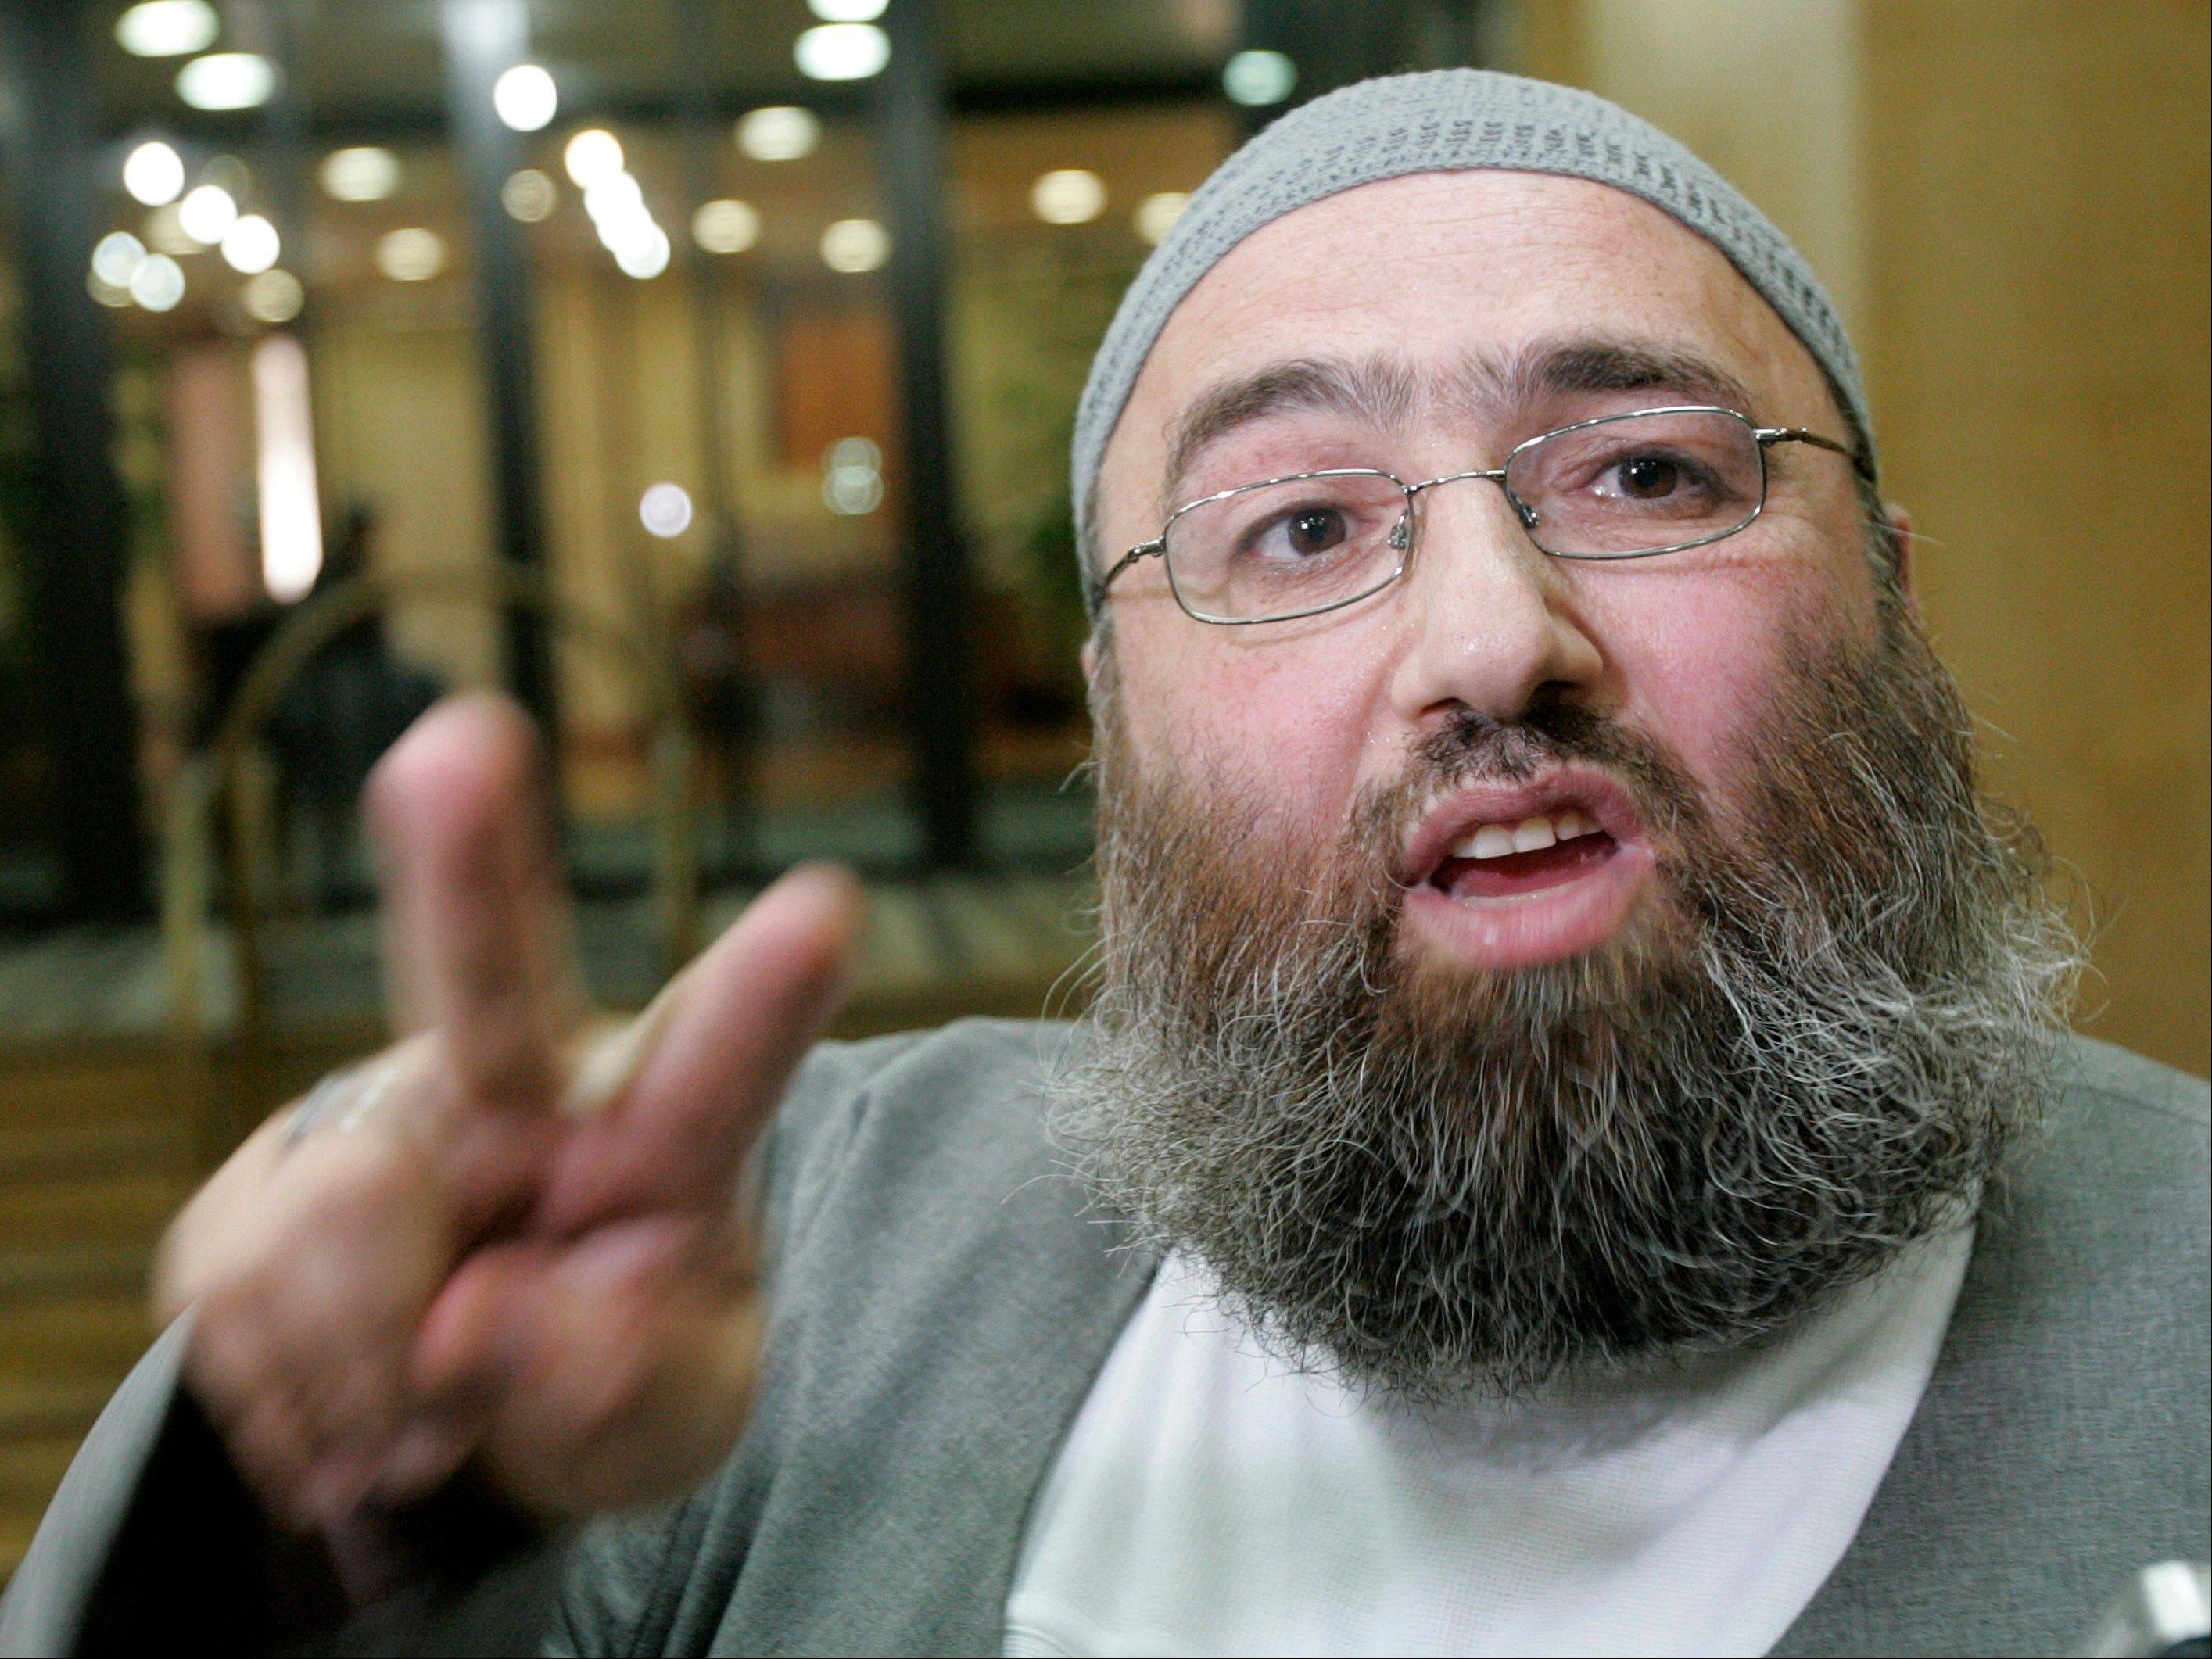 Muslim cleric Omar Bakri Mohammed. The slaying of a British soldier in east London cast a spotlight on radical preachers that influenced Michael Adebolajo, the attacker seen in videos with bloody hands wielding a butcher knife. It also raised questions about the reach of the terrorist group al-Shabab, after a British government official said one of the two men tried to go to Somalia to train or fight with the group.